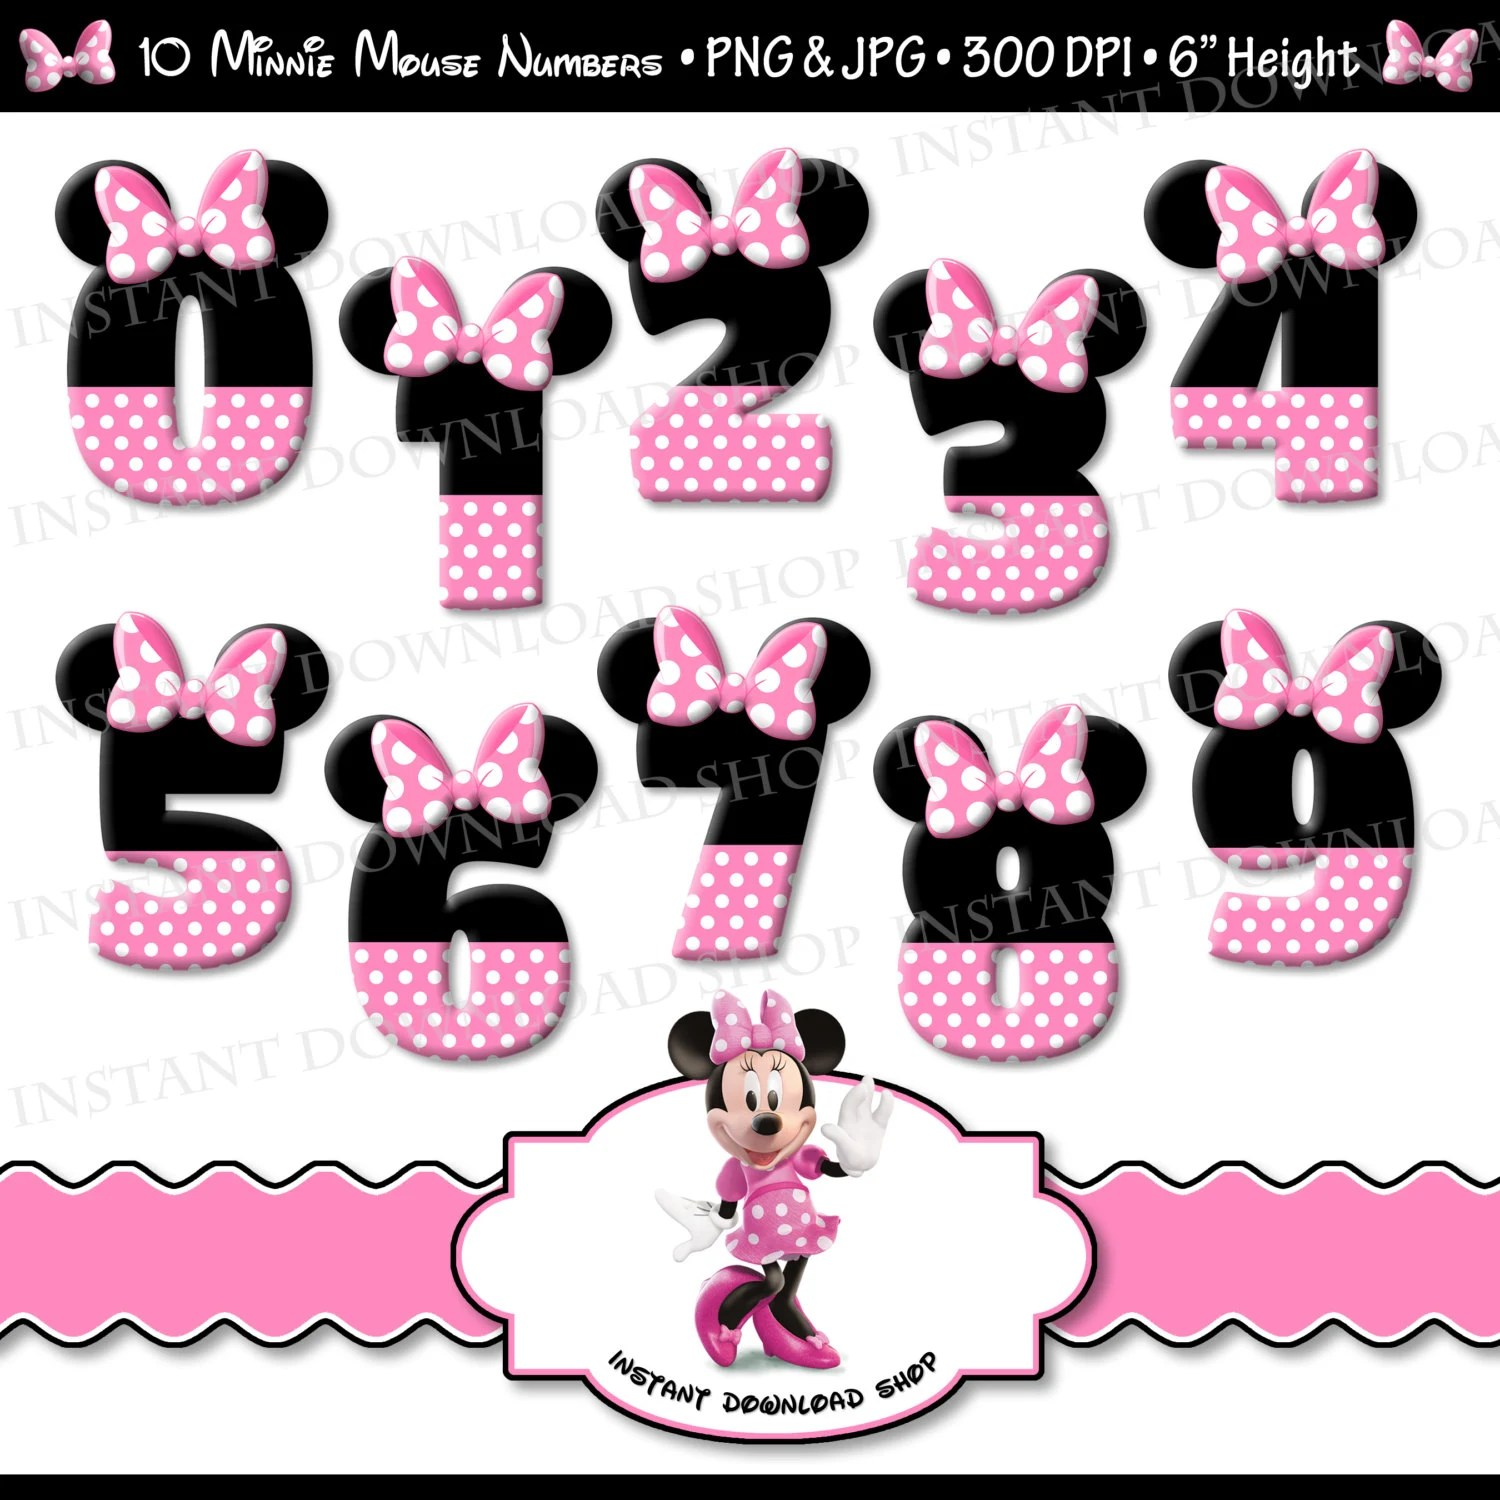 Make Your Own Monogram Iphone Wallpaper Instant Download Minnie Mouse Numbers Minnie Mouse Digital